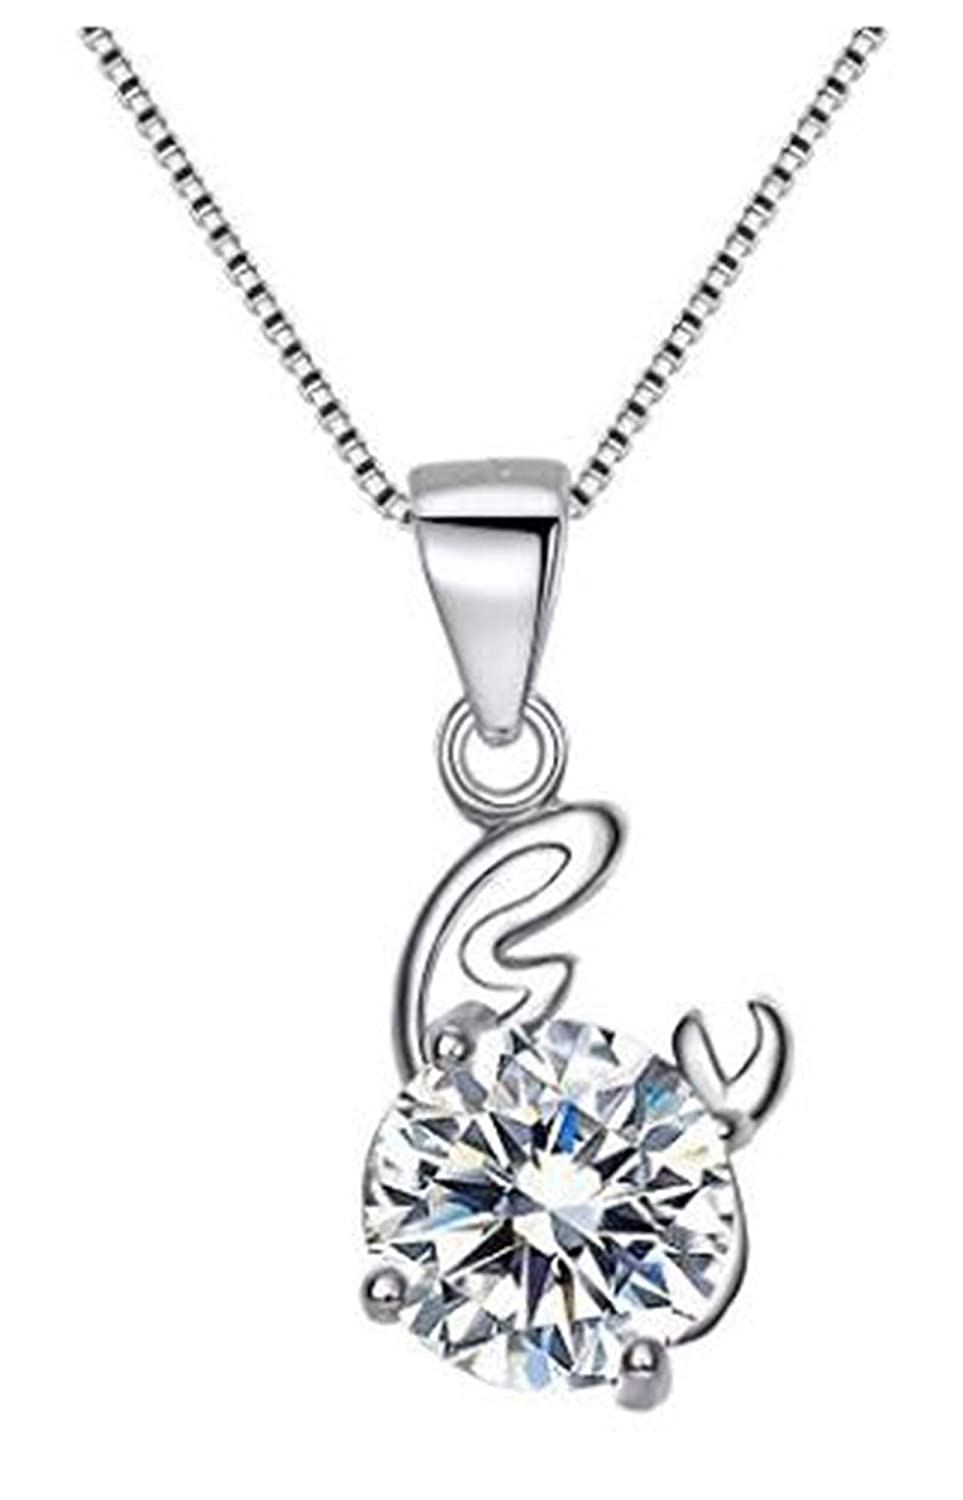 Horoscope,Constellation Necklaces Astrology Zodiac Griffs Jewelry 925 Sterling Silver Pendant